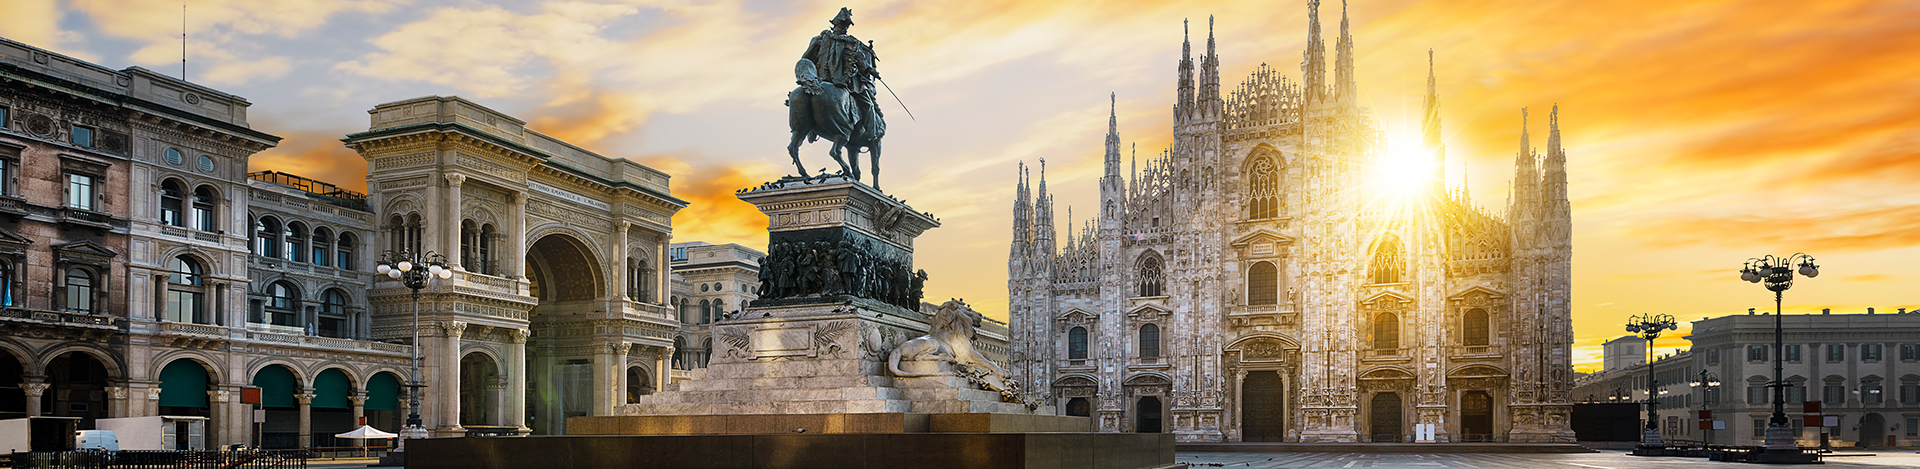 Milan Italy at sunrise